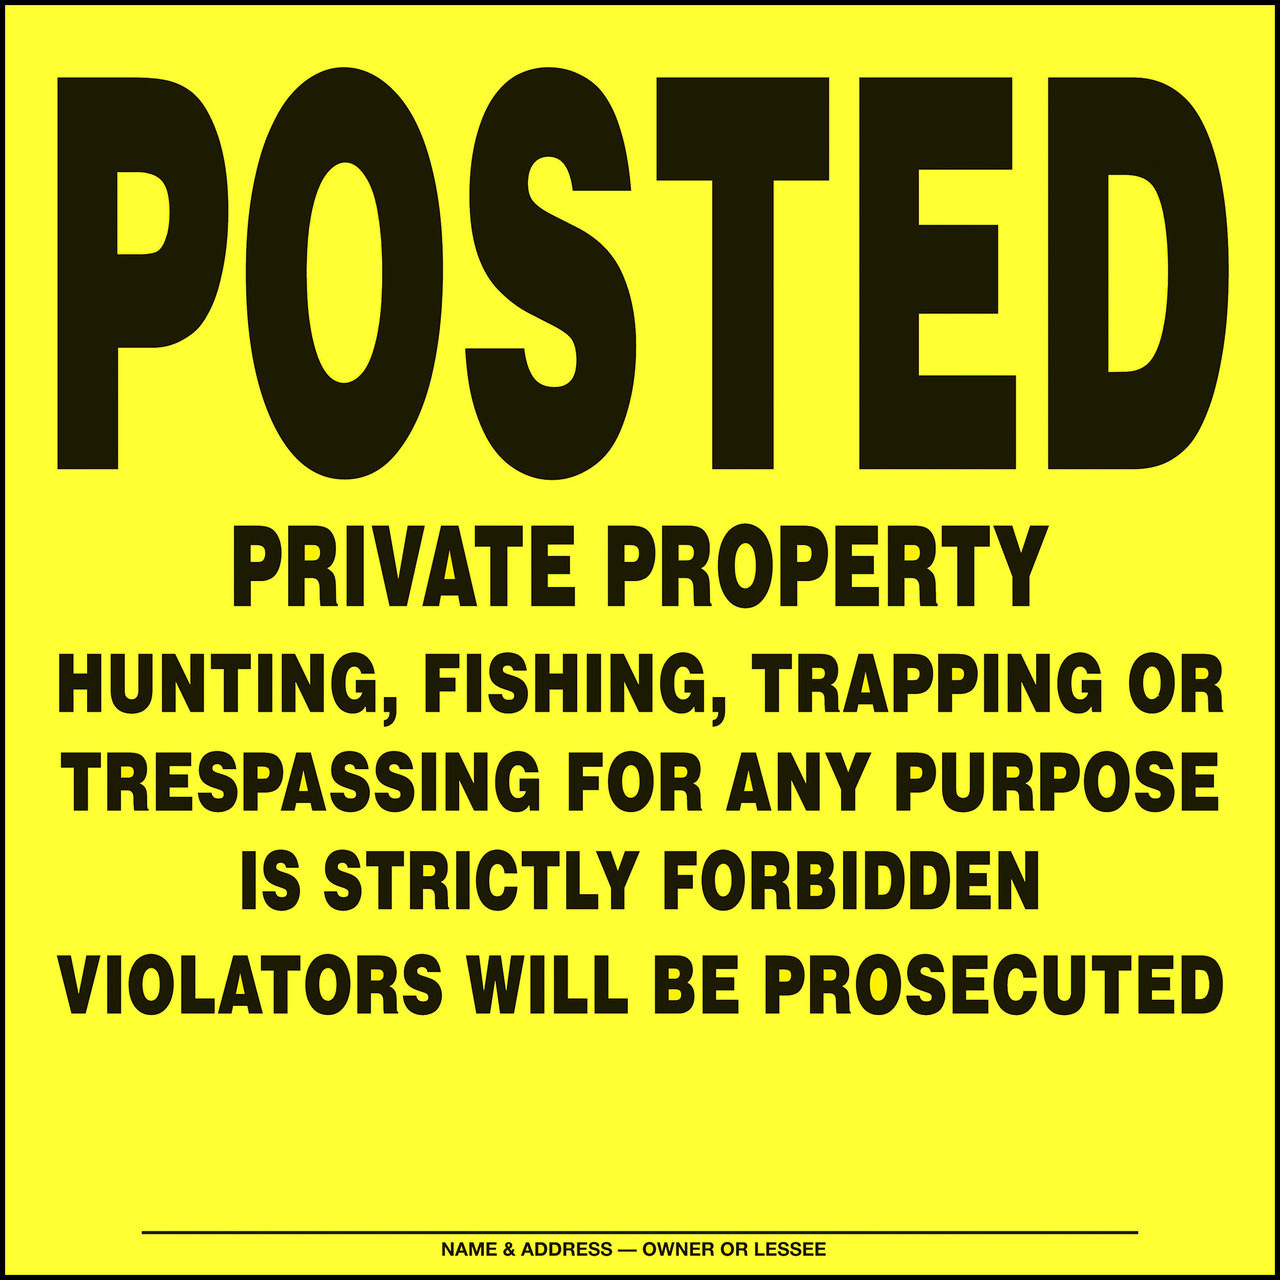 Posted Private Property Posted Signs - Yellow or Orange Aluminum